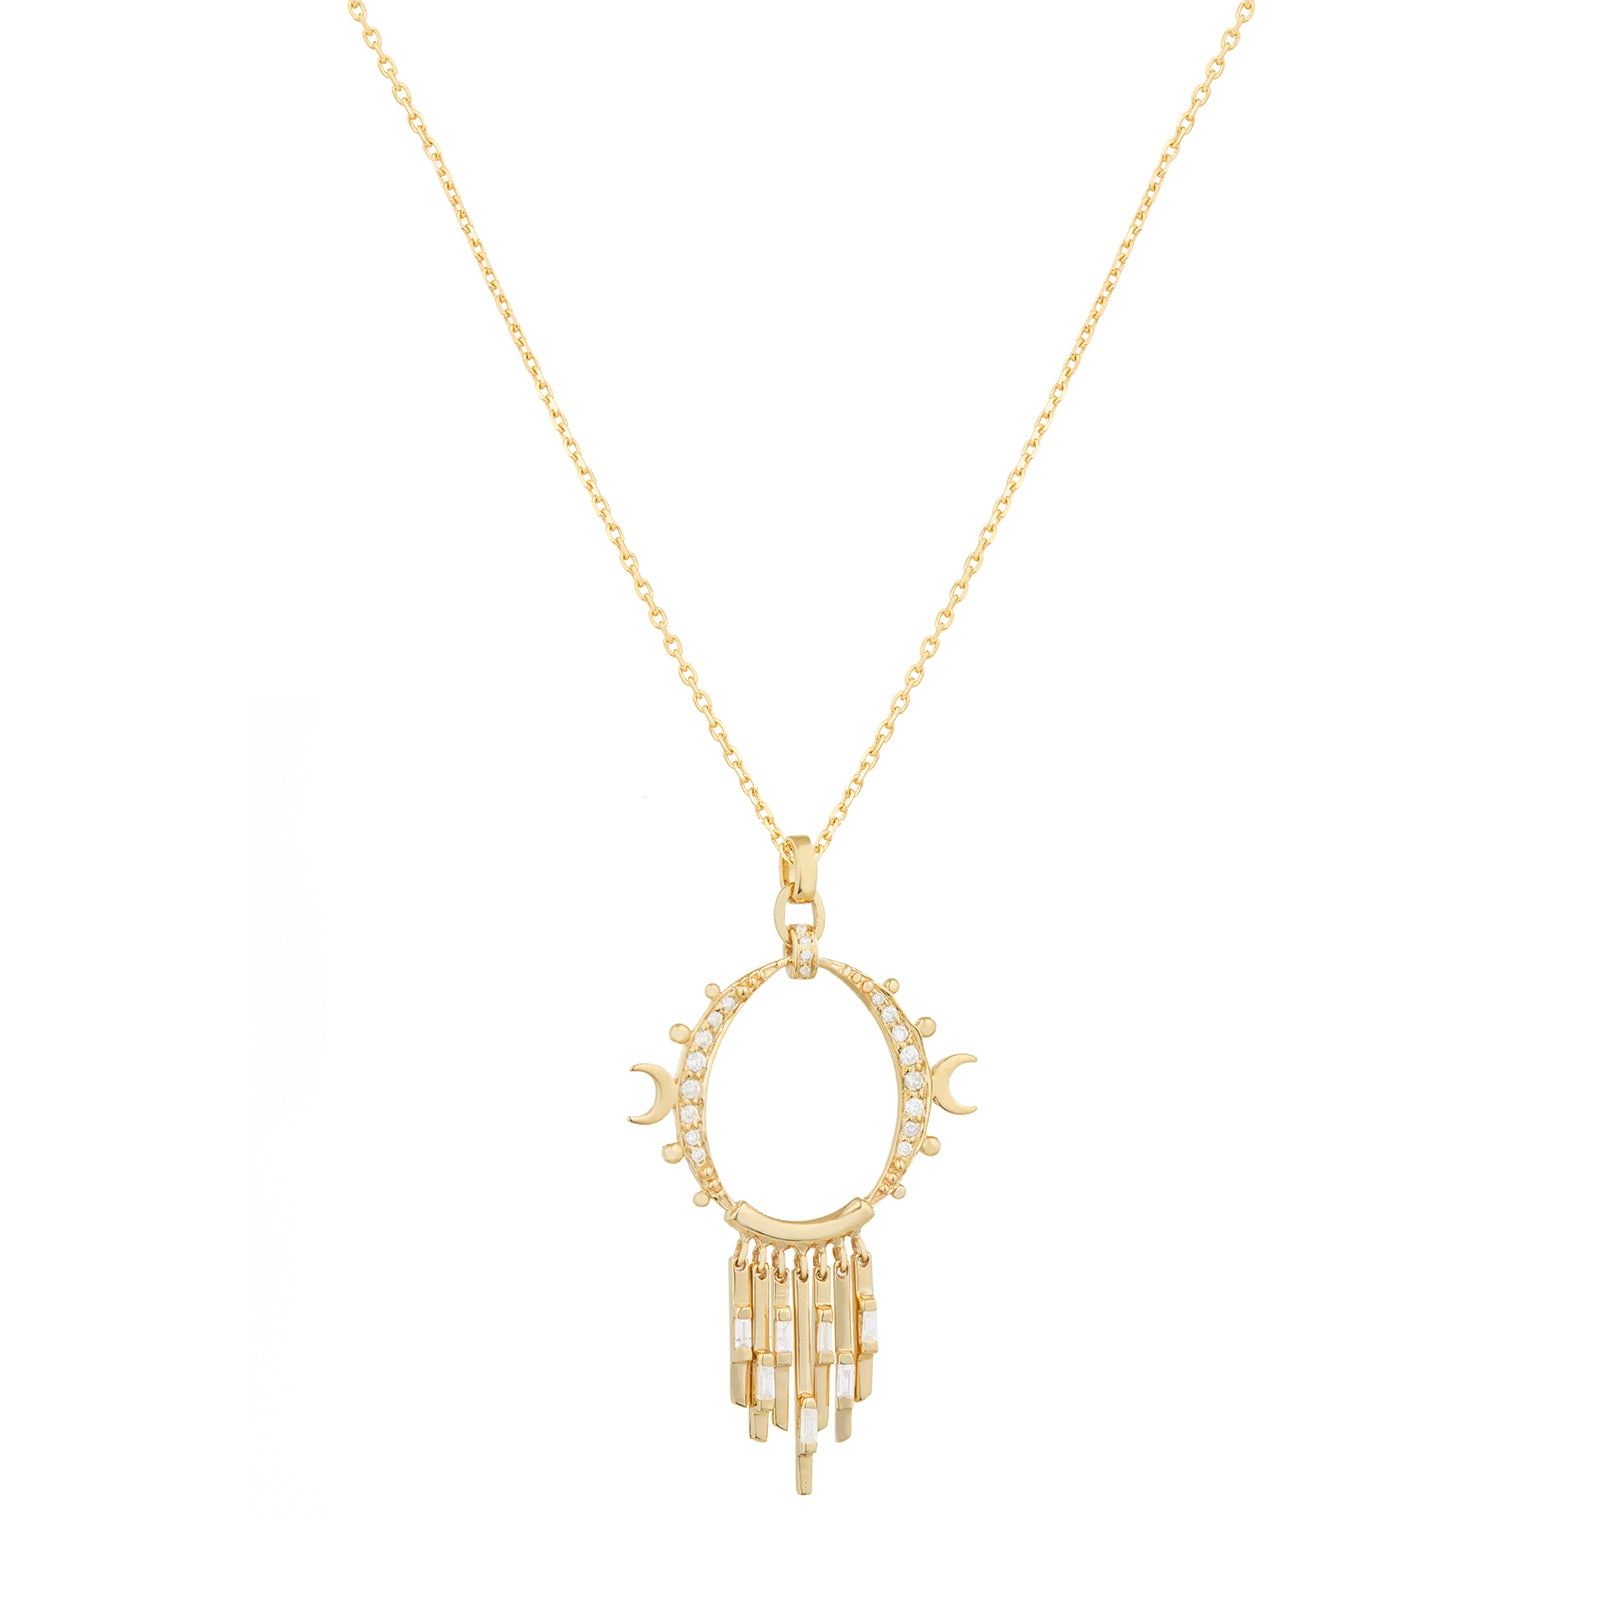 Celine Daoust Moon Crescents & Dangling Diamond Necklace - Necklaces - Broken English Jewelry